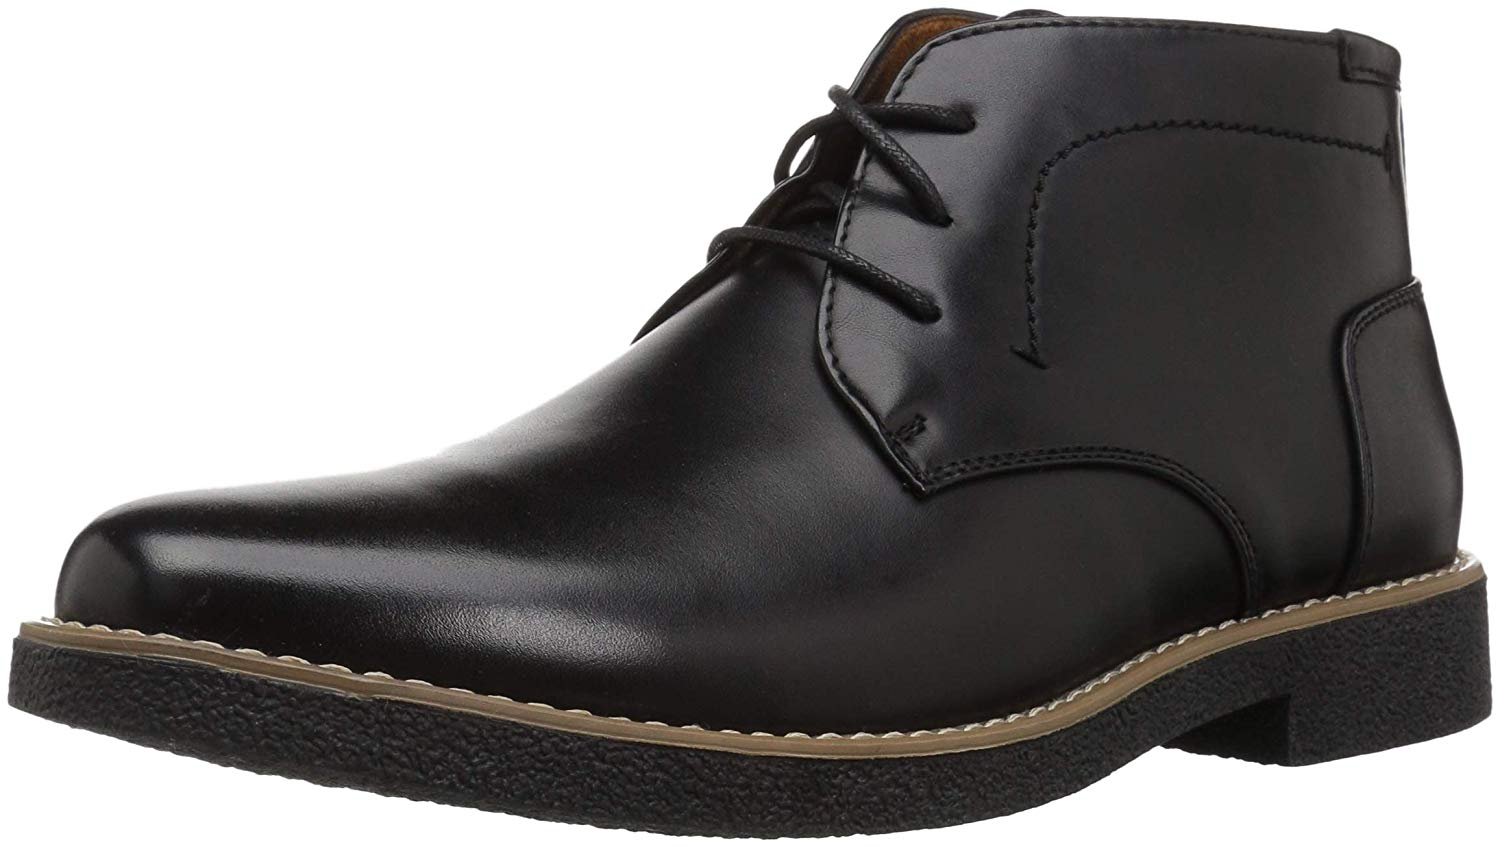 Deer Stags Men's Bangor Memory Foam Dress Casual Comfort Chukka Boot